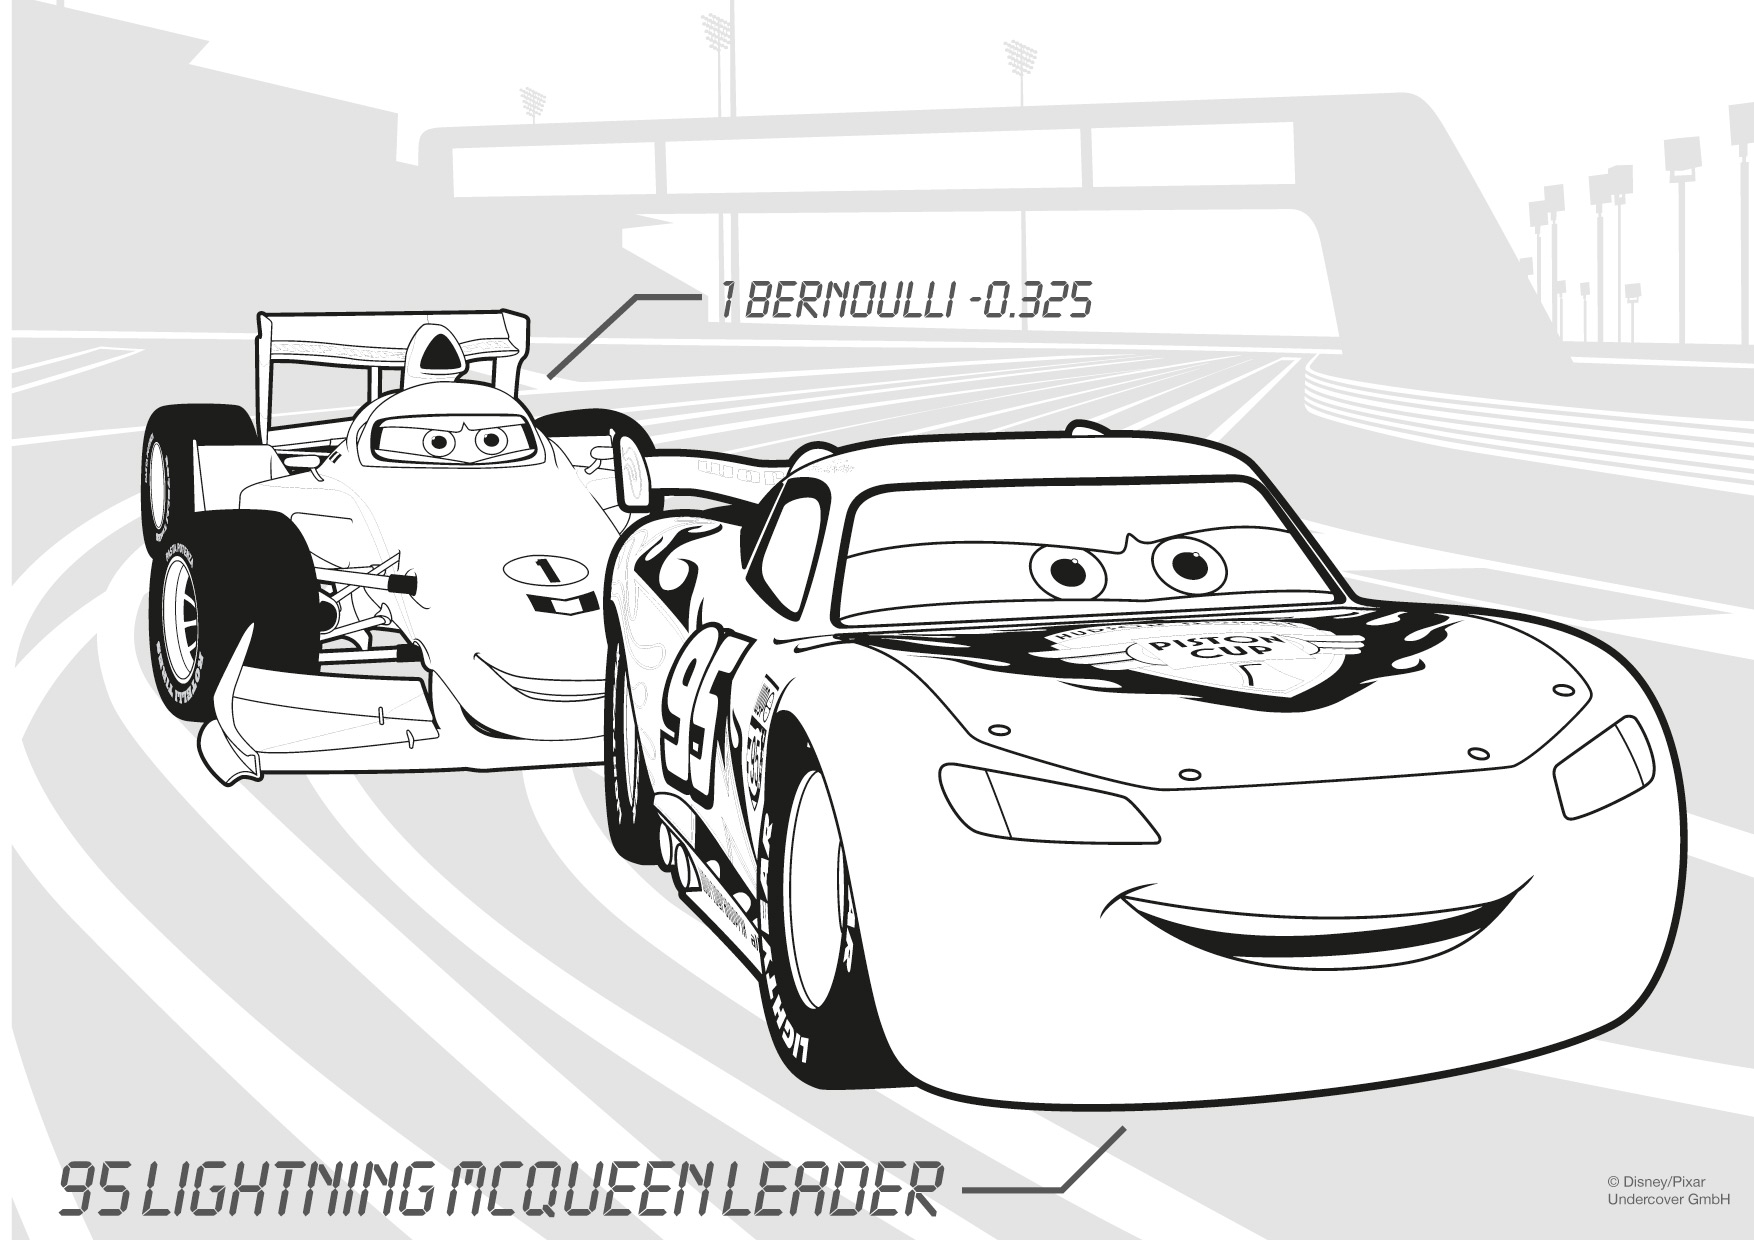 Cars Auto Ausmalbilder : 23 Lightning Mcqueen Coloring Pages Collections Free Coloring